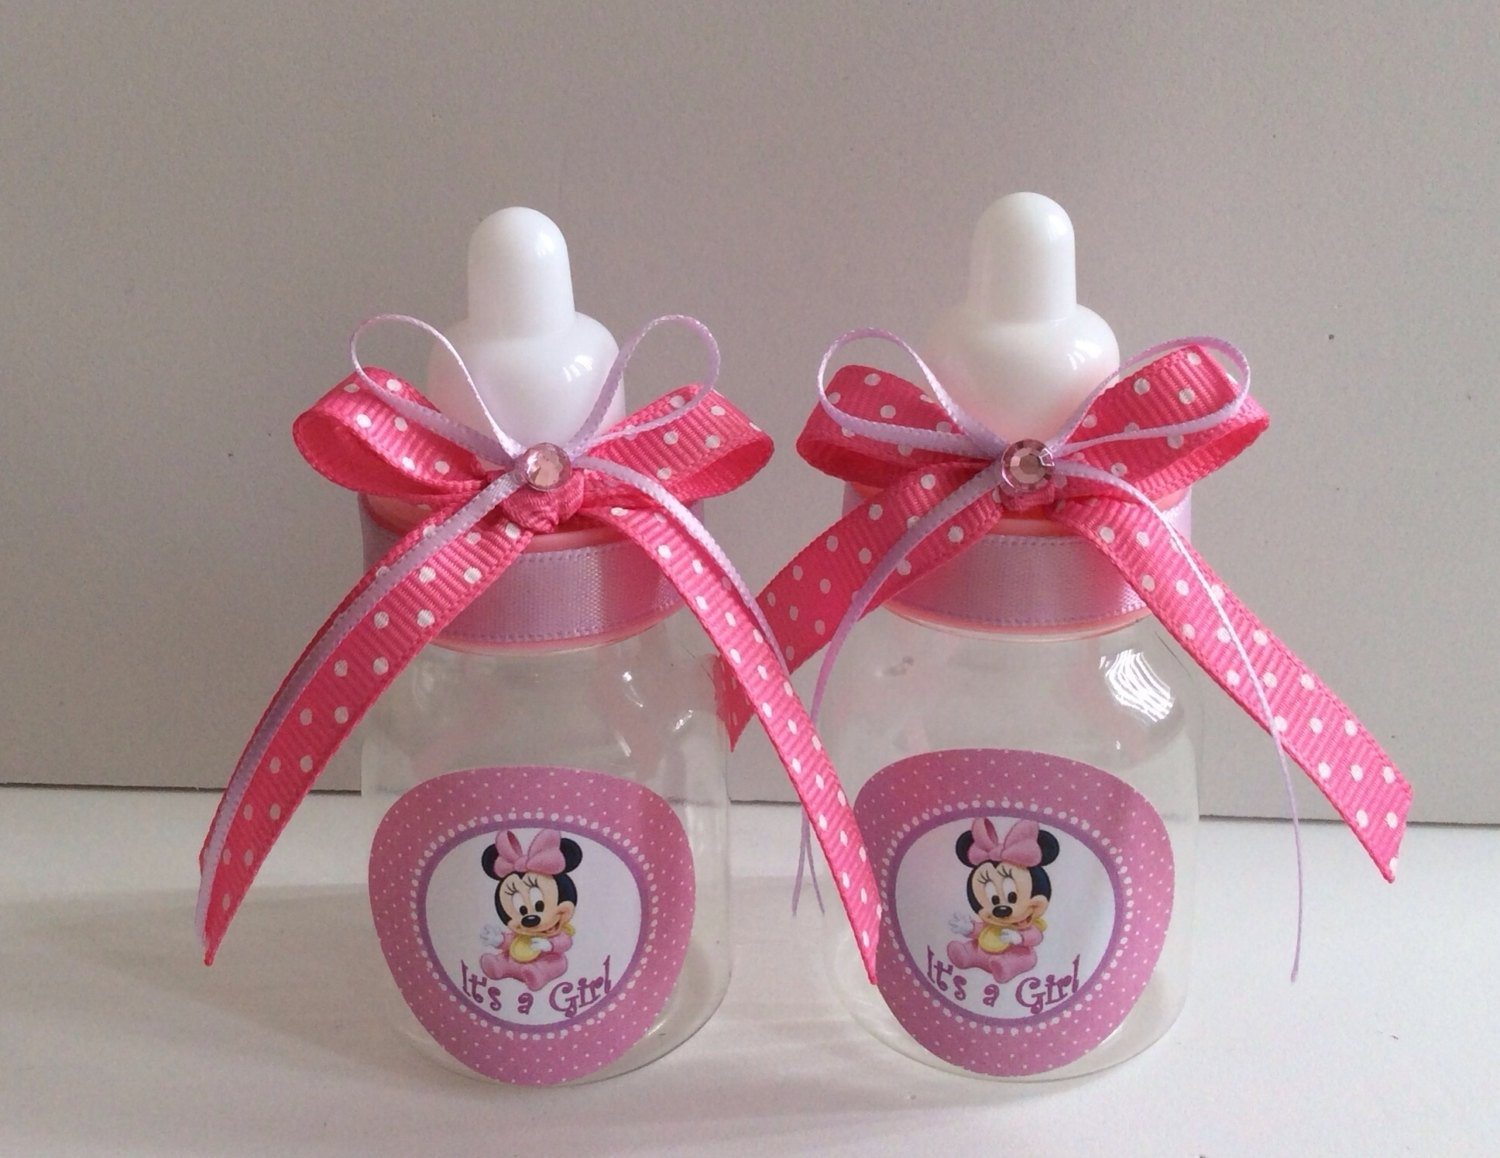 10 Wonderful Baby Minnie Mouse Baby Shower Ideas baby shower decorations minnie mouse baby shower ideas gallery 2020